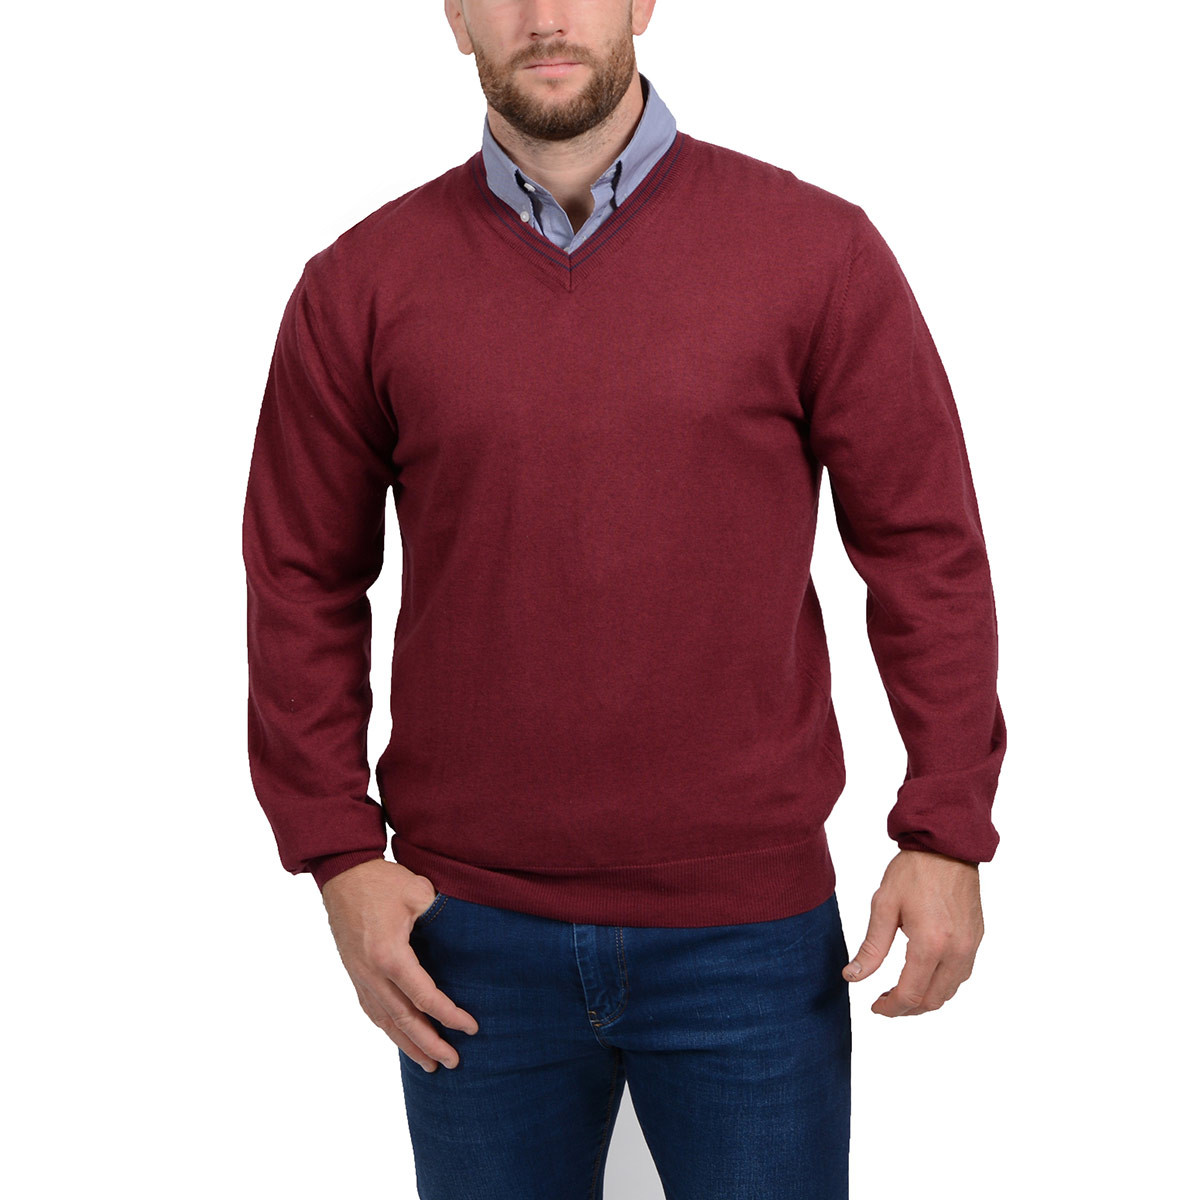 6c77a8402a73 pull homme col V bordeaux - RUCKFIELD